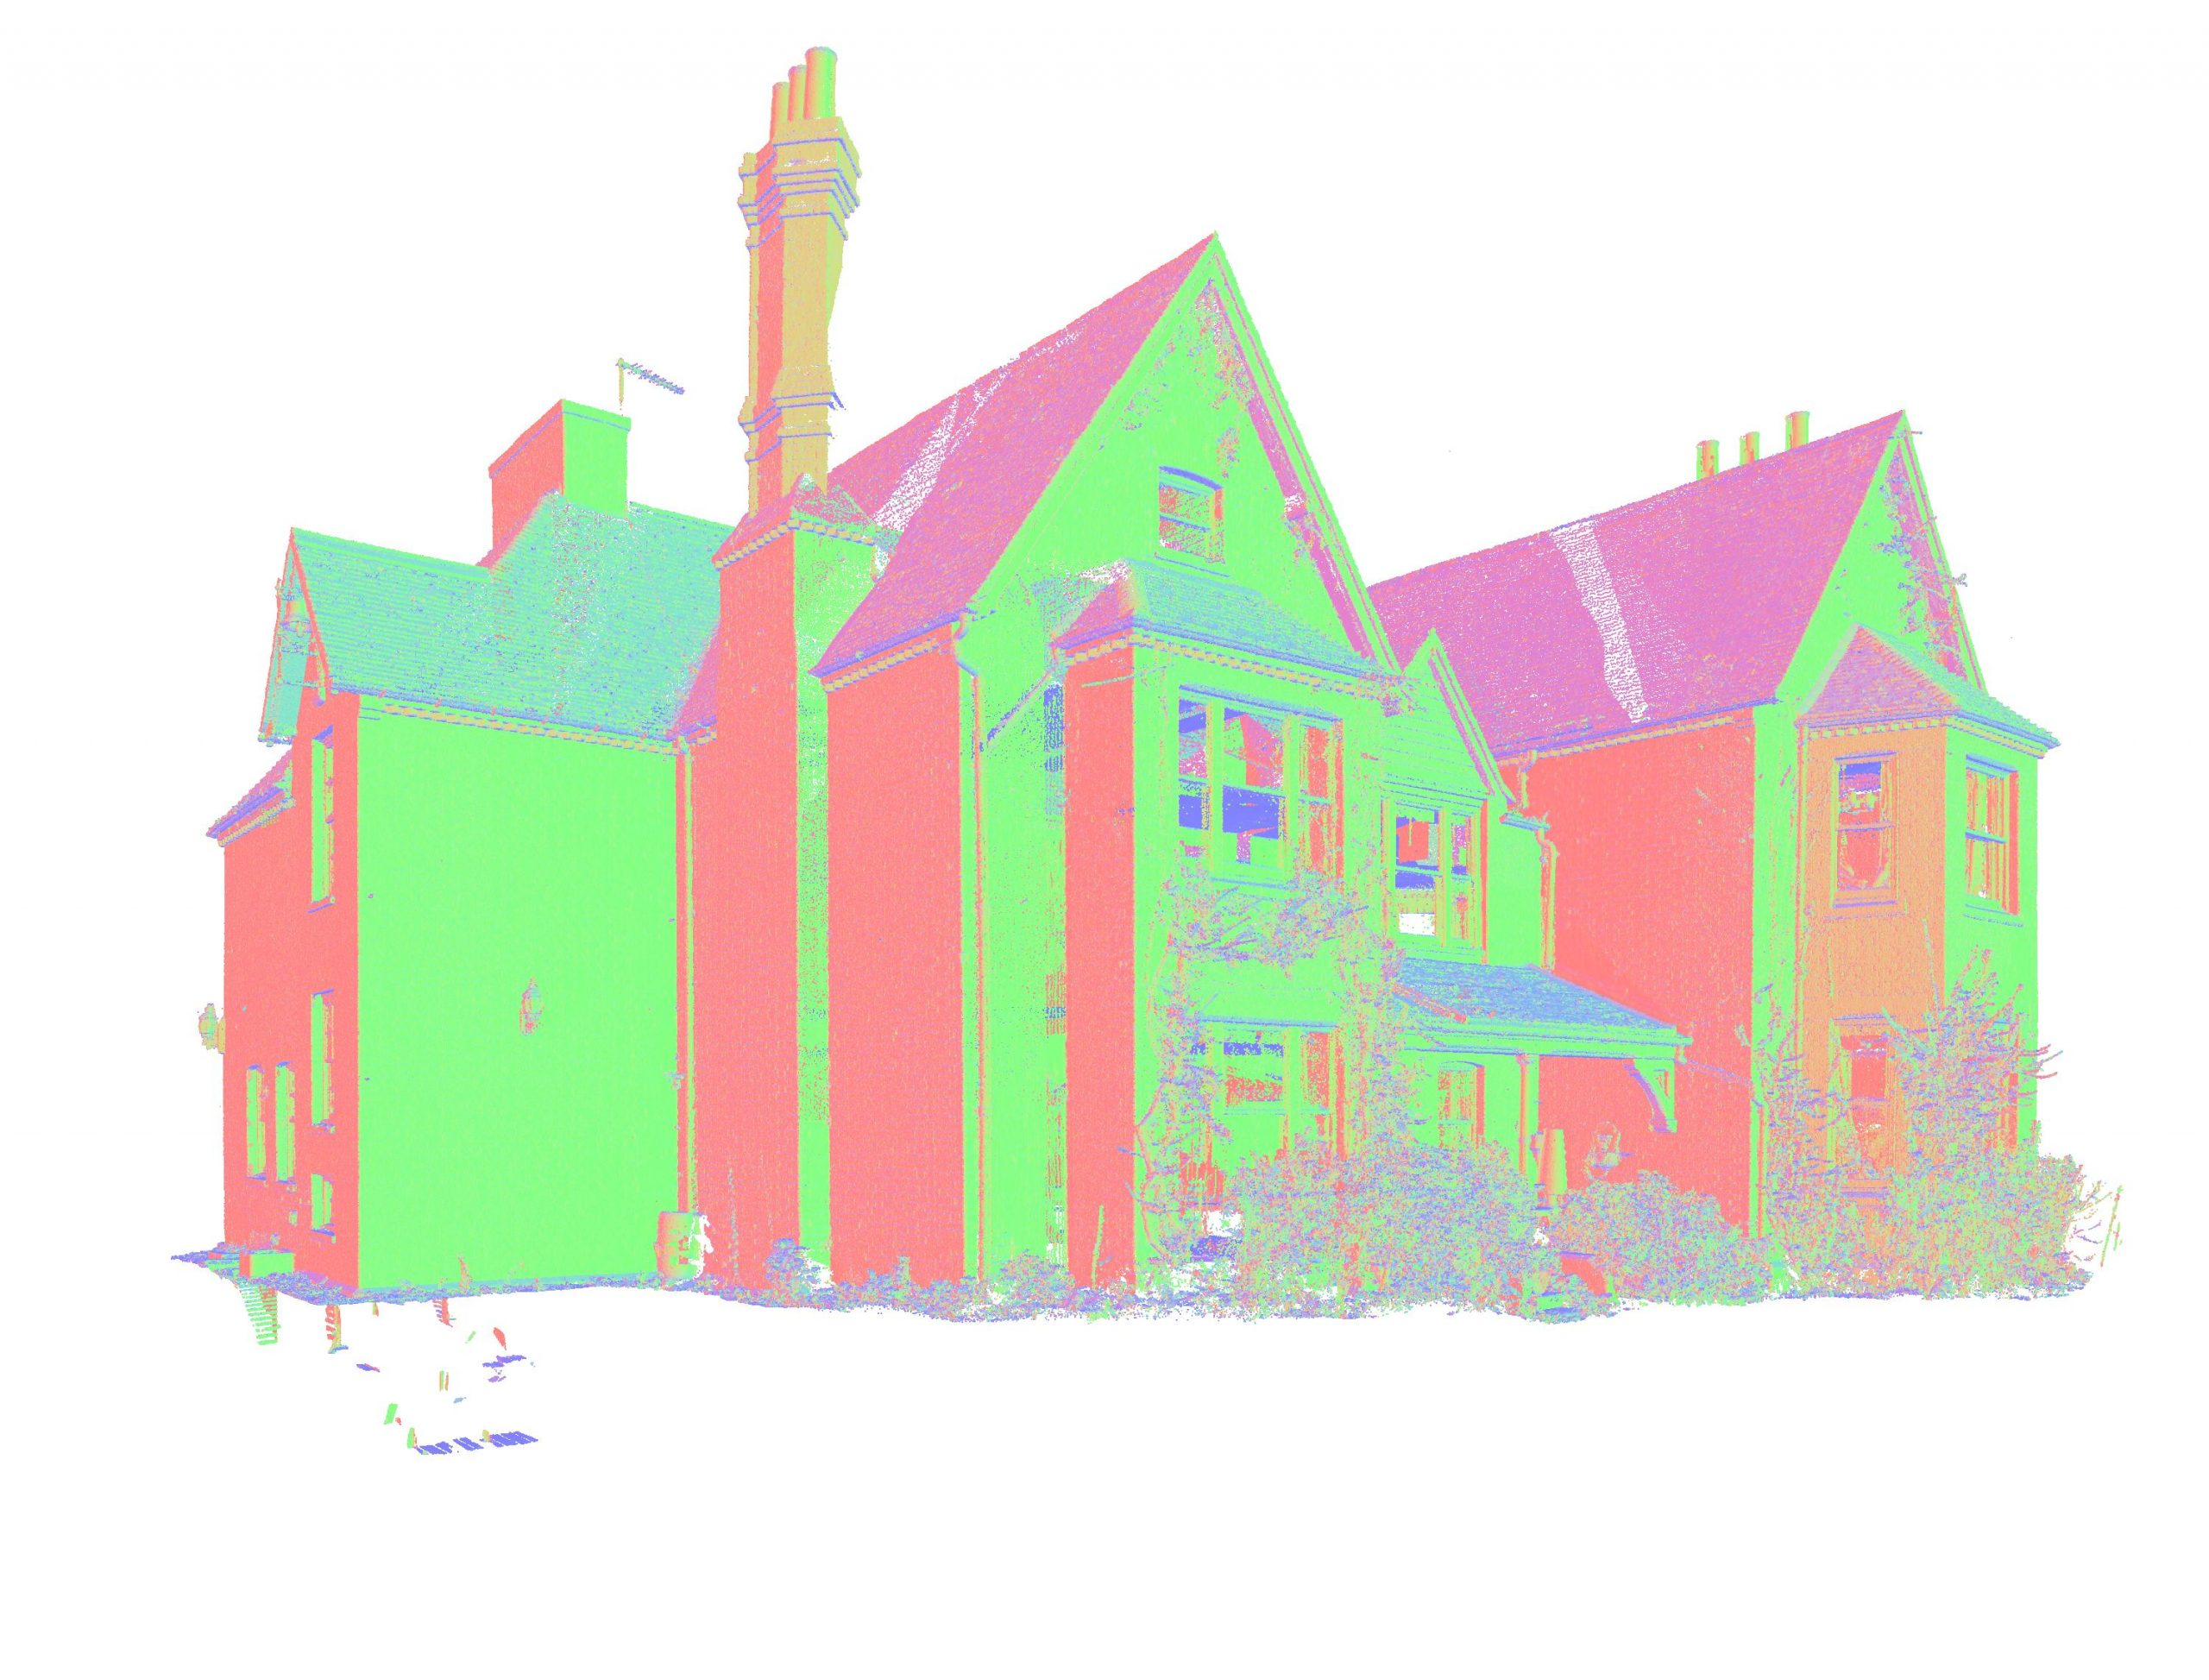 Point Cloud of the detached House